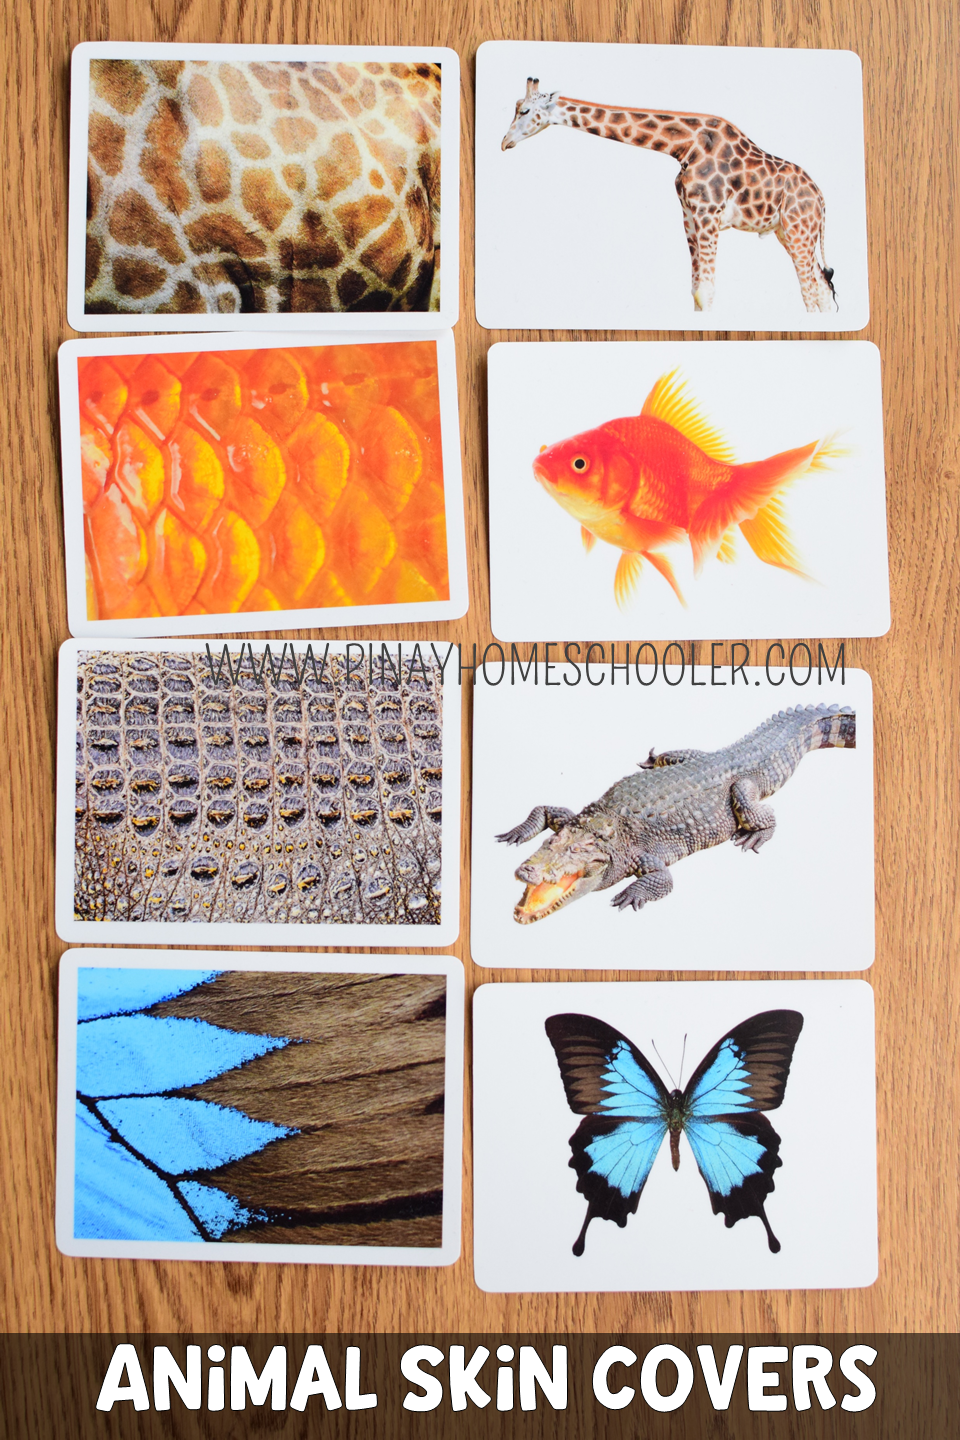 This Is A Montessori Inspired Learning Material Used Mainly For Learning About The Different Skin Animal Co Animal Coverings Animal Print Wallpaper Animal Skin